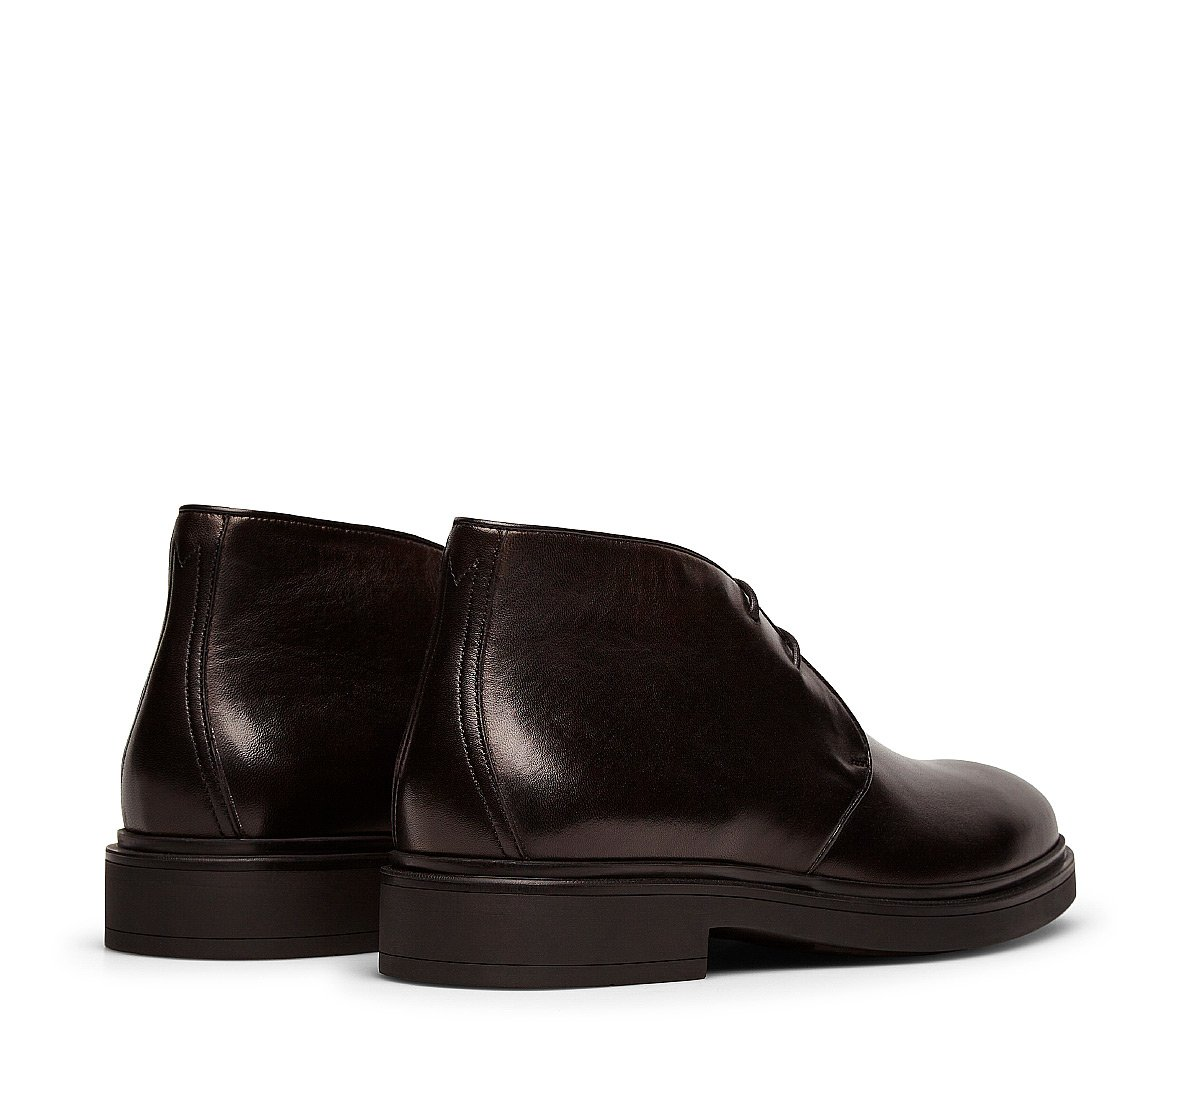 Two-eyelet ankle boots